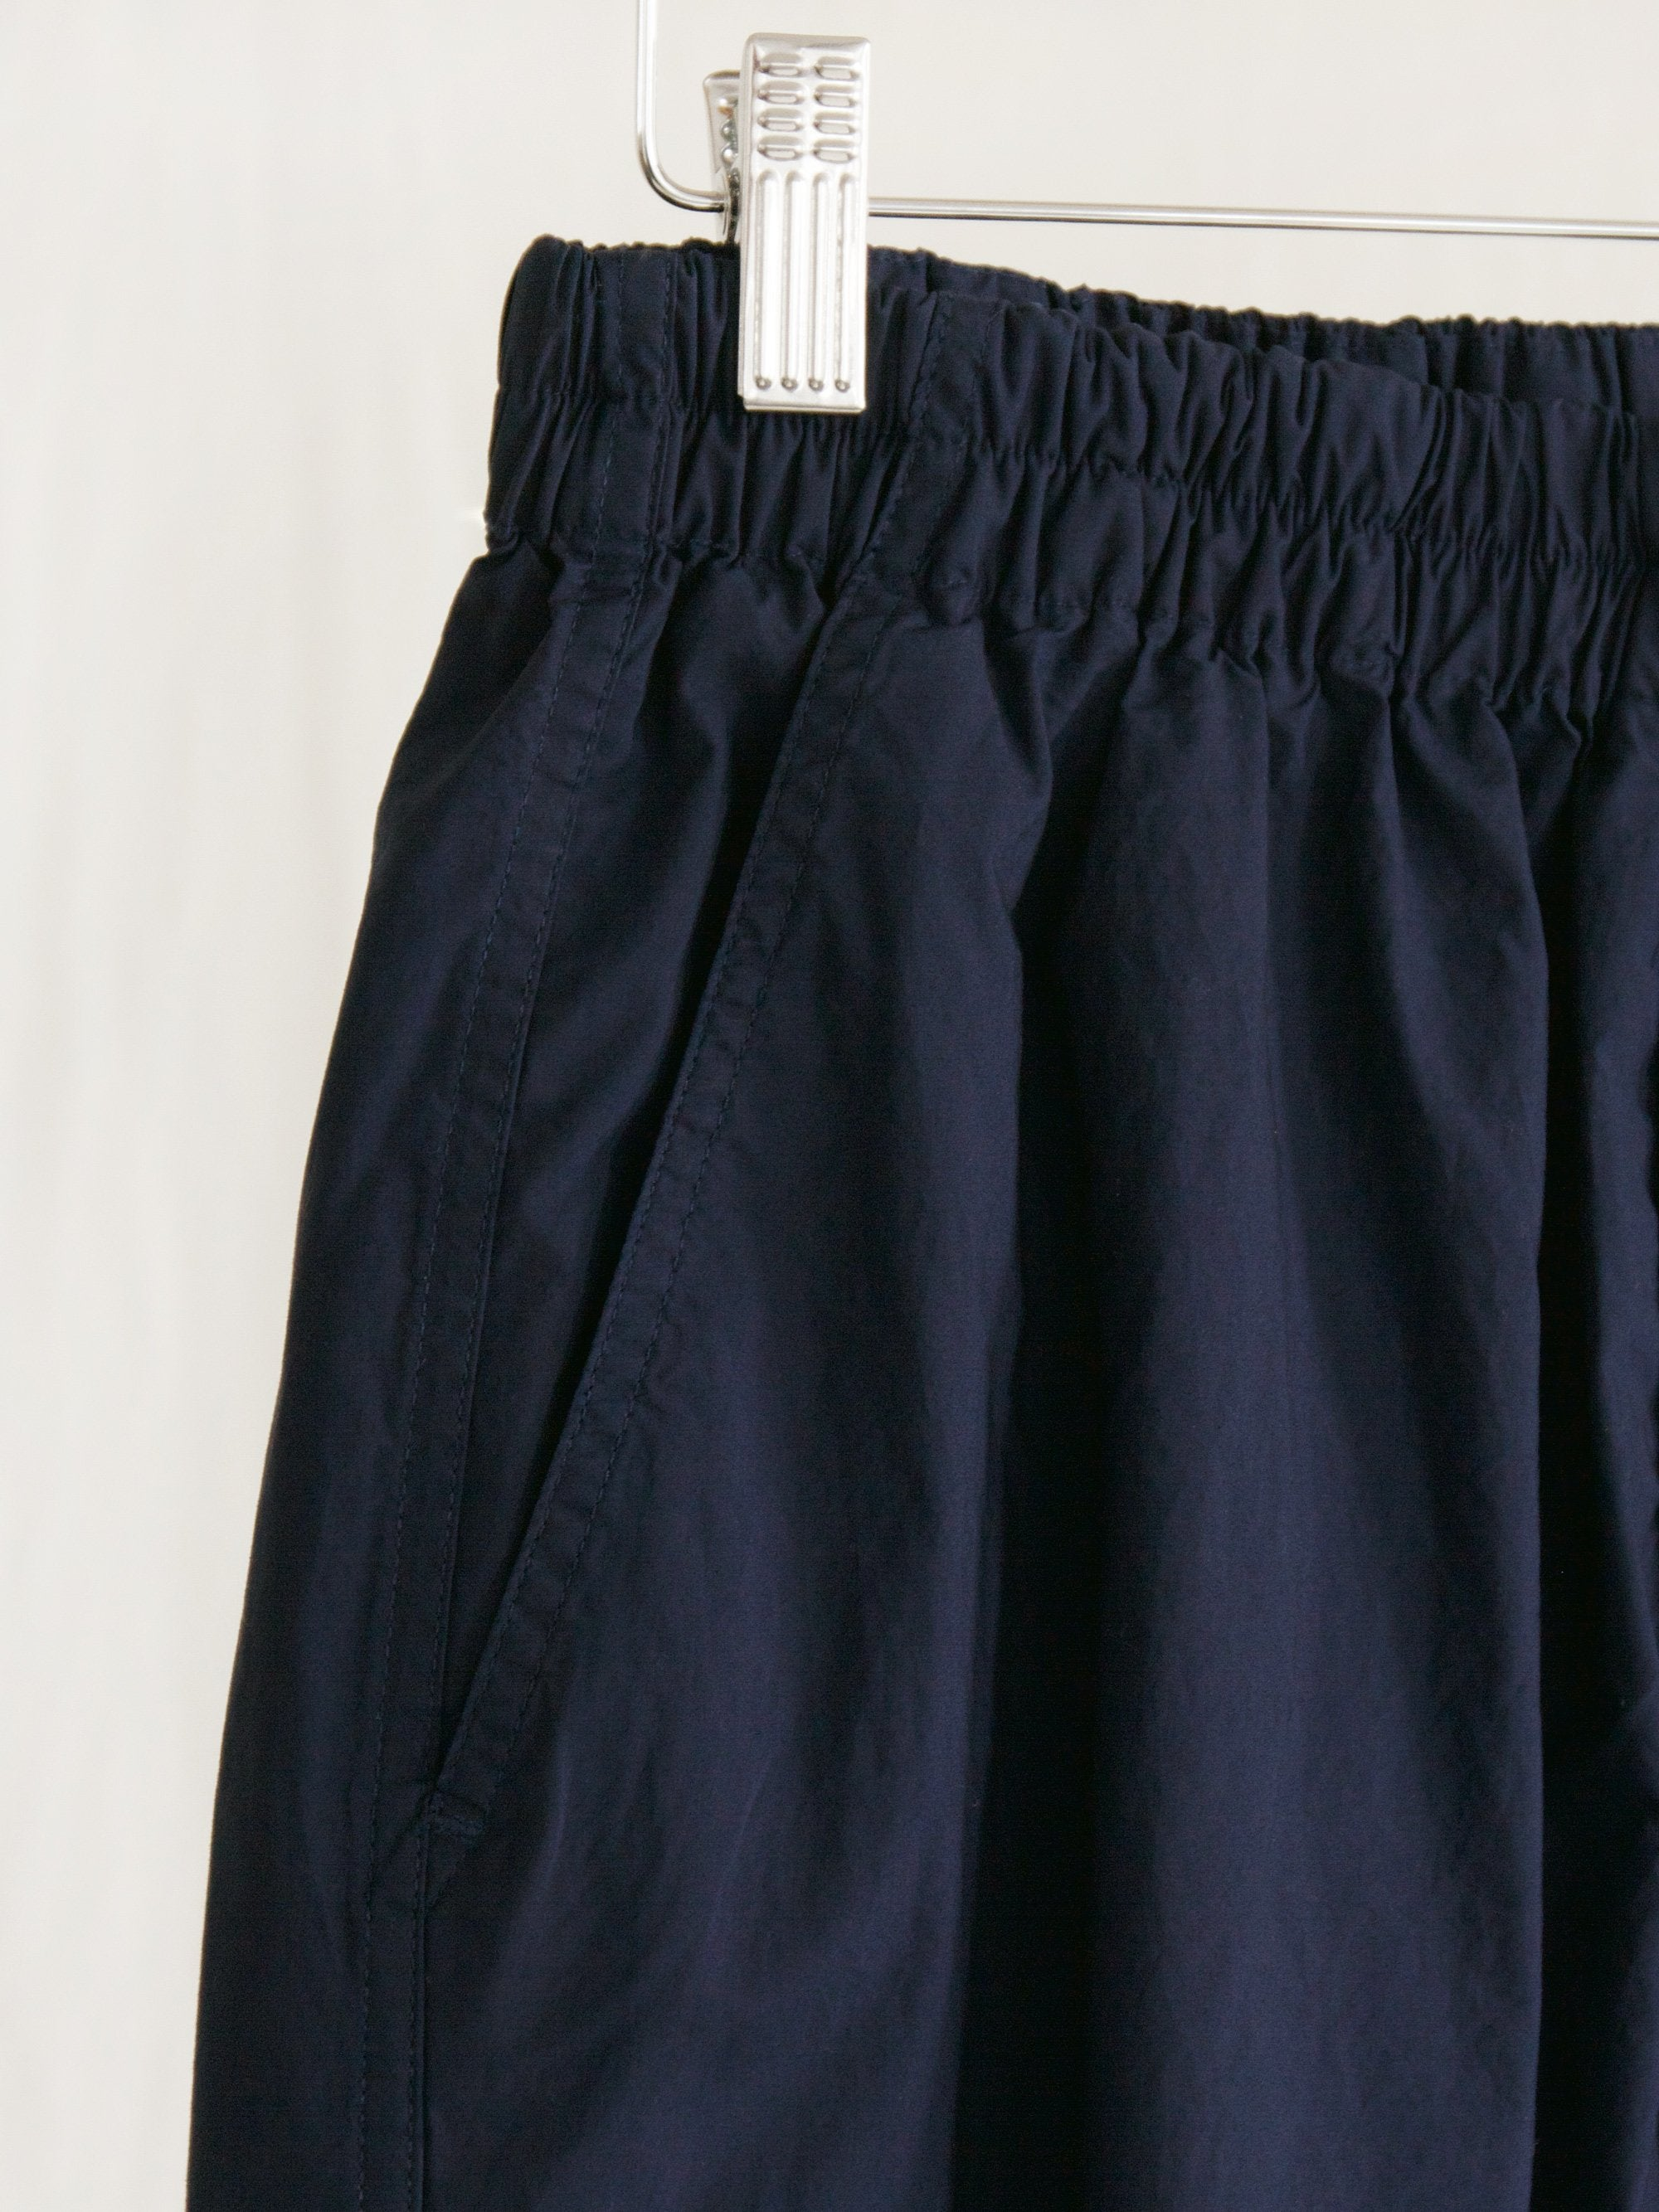 Namu Shop - Document Lightweight Stretched Gasset Easy Pants - Navy